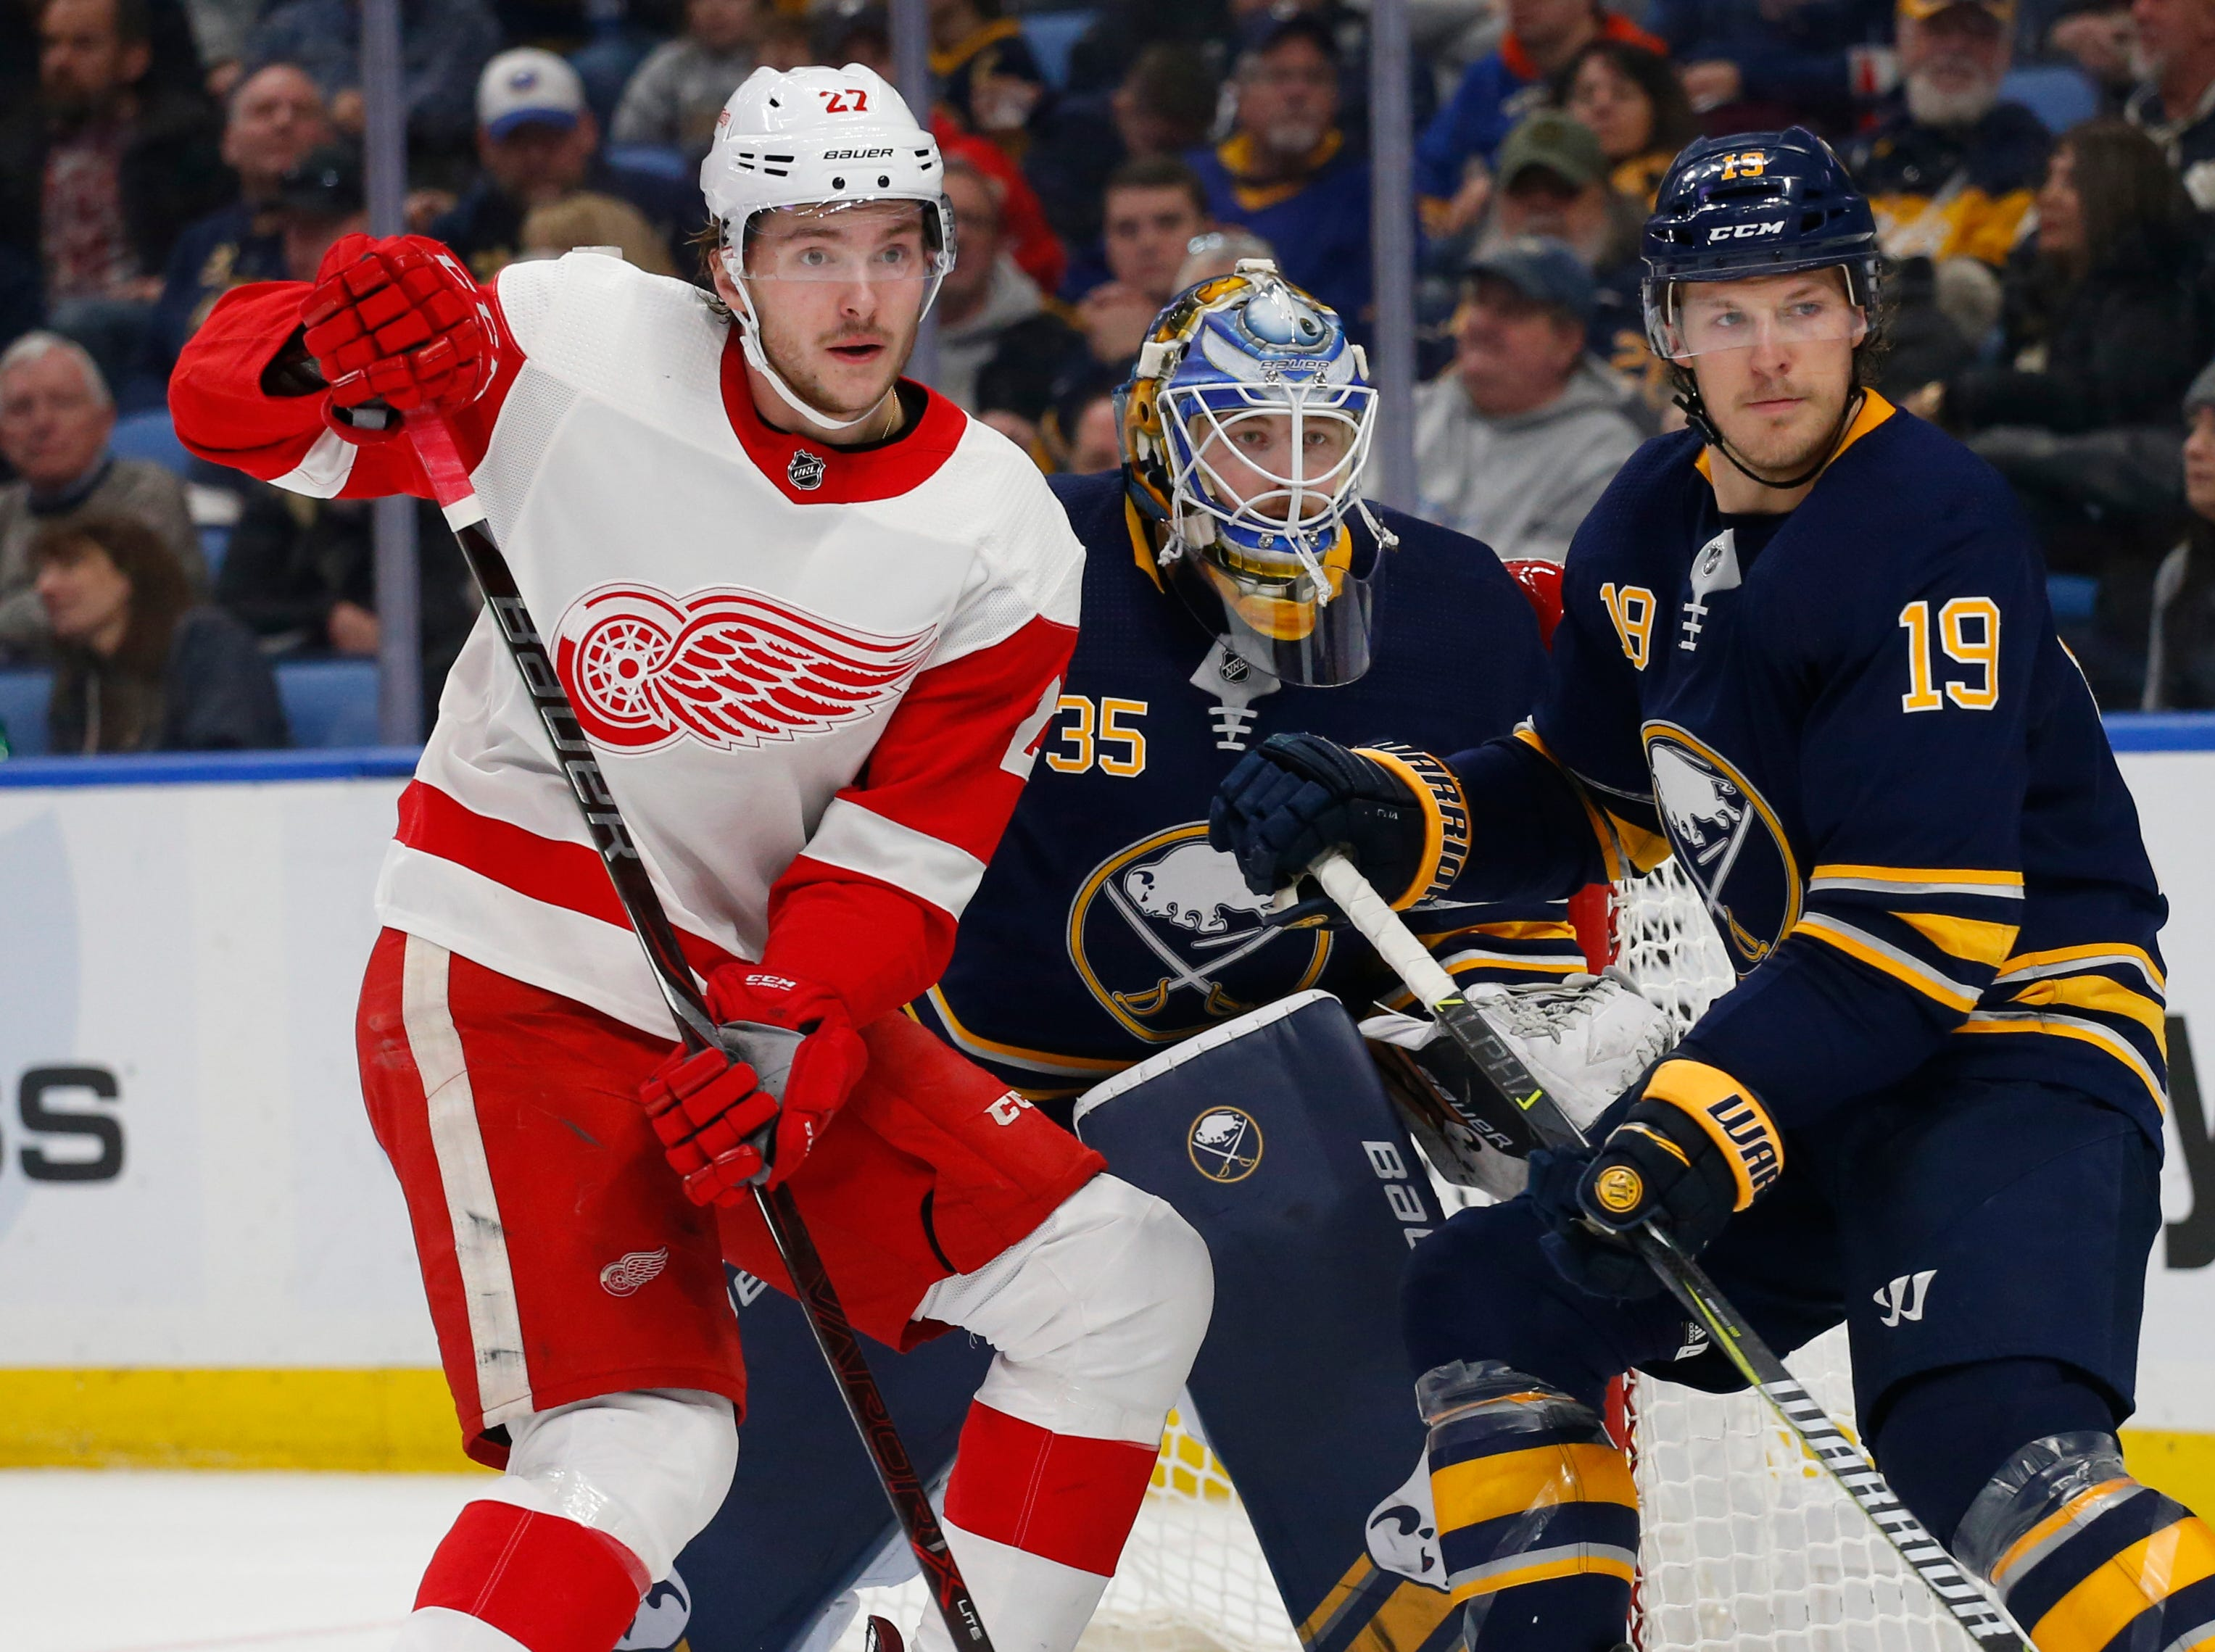 Sabres defenseman Jake McCabe and Red Wings forward Michael Rasmussen battle for position in front of Sabres goalie Linus Ullmark during the second period of the Wings' 3-1 loss on Saturday, Feb. 9, 2019, in Buffalo N.Y.